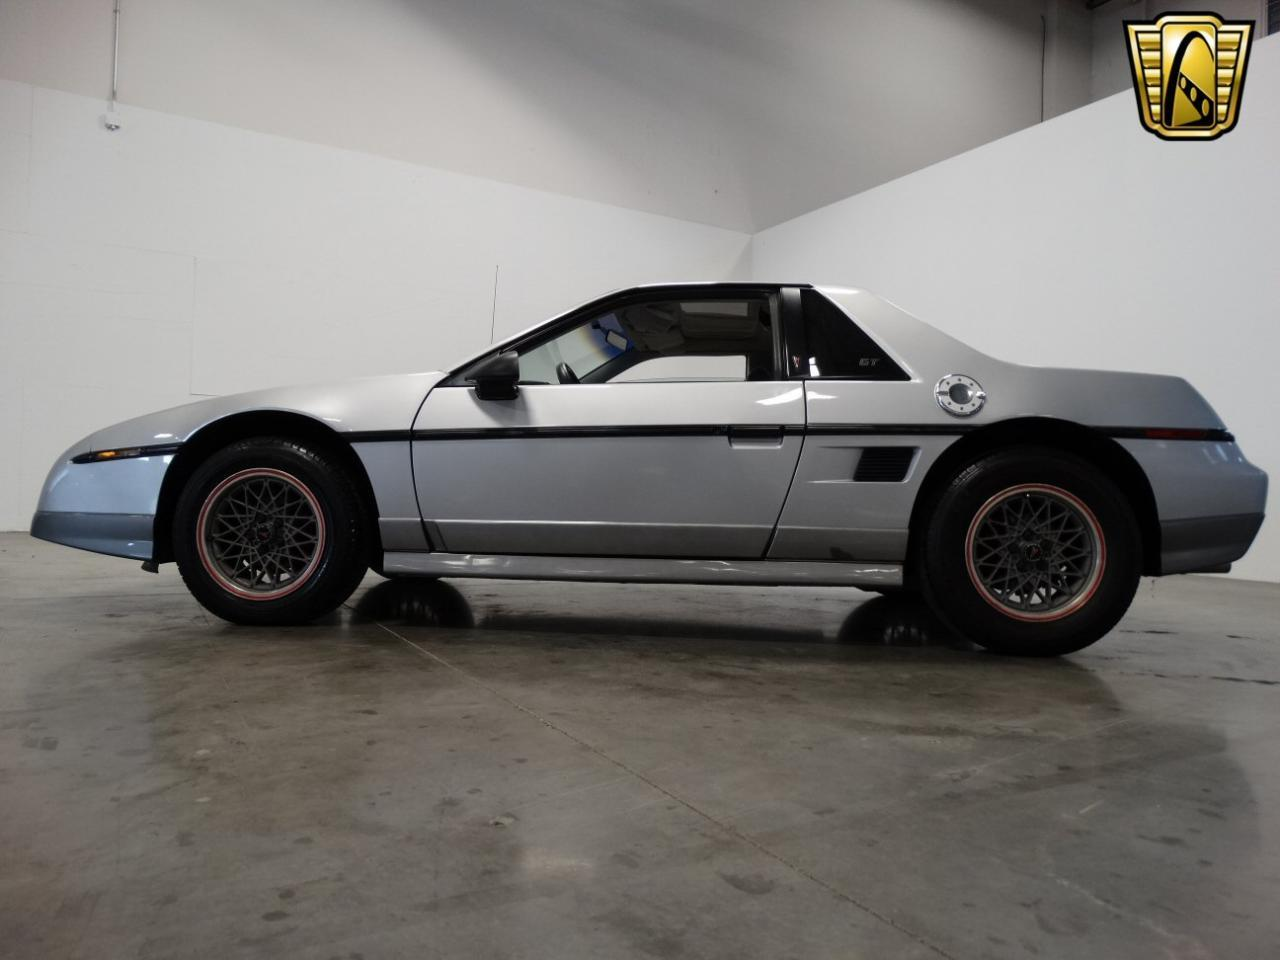 Large Picture of 1985 Fiero located in Tennessee - $6,995.00 - KDWK